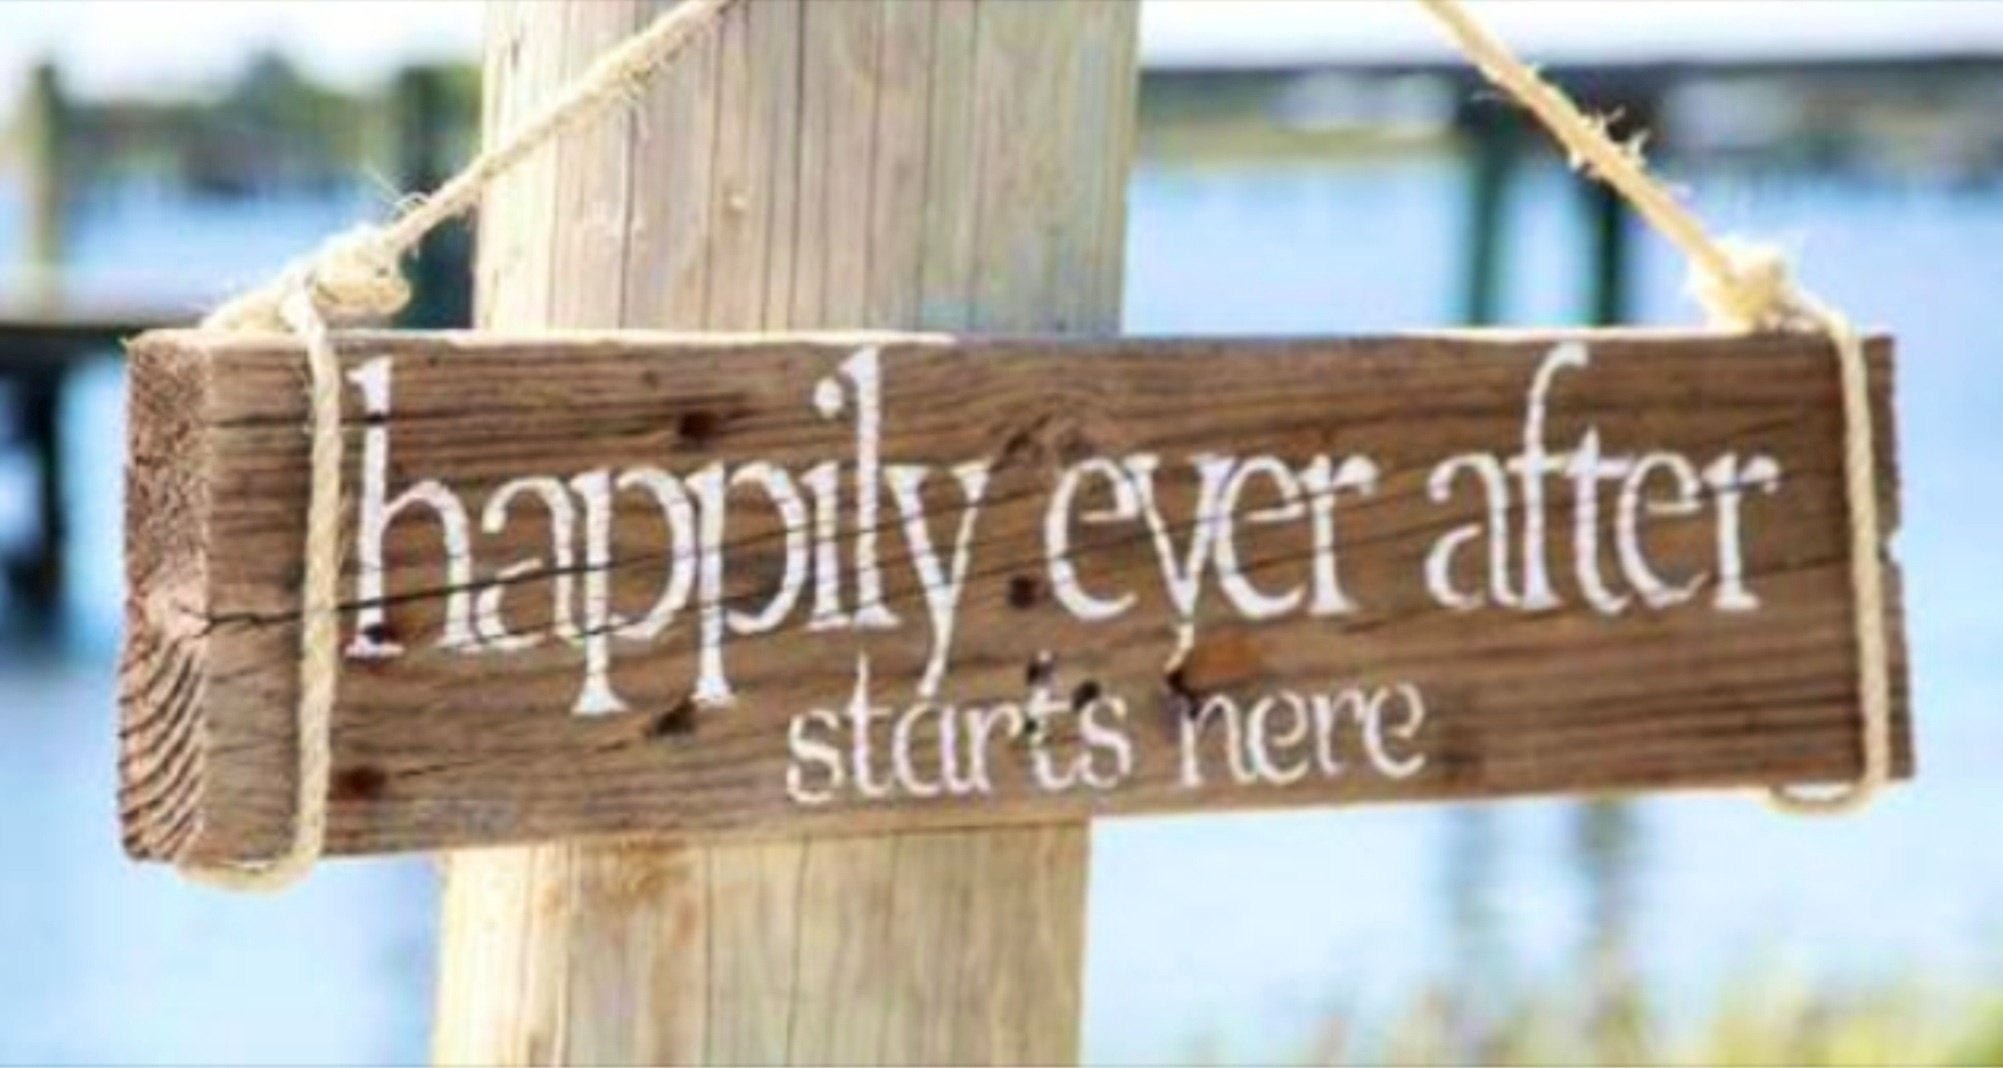 Happily Ever After Starts Here Bridal Expo   Adelaide